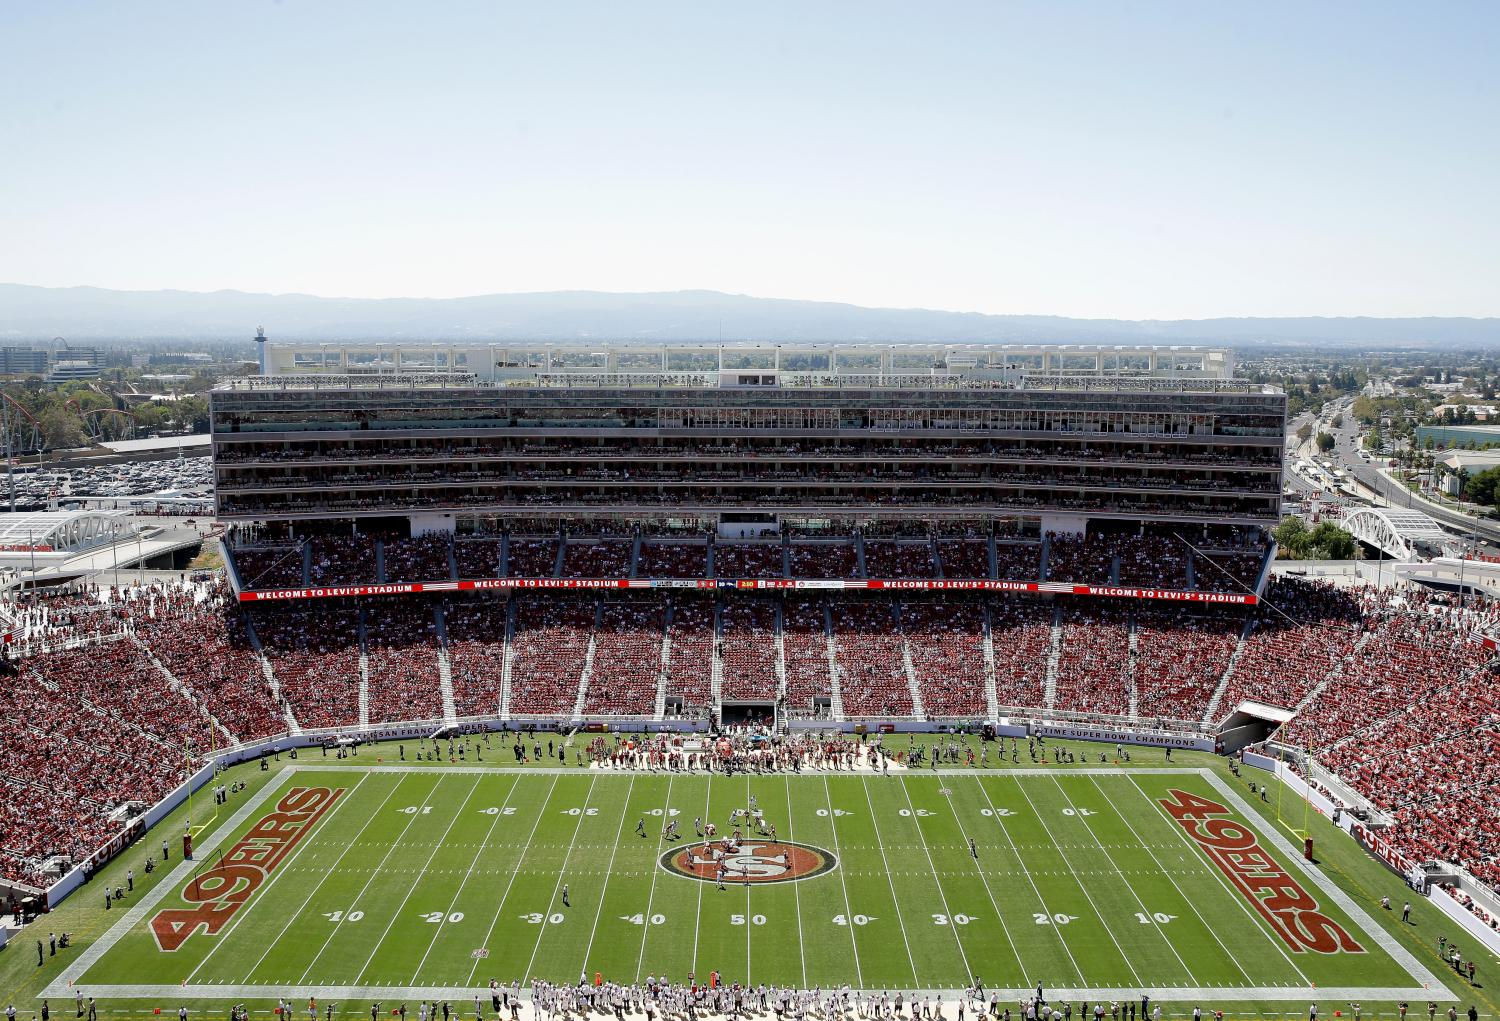 A general view during a preseason game between the San Francisco 49ers and Denver Broncos at Levi's Stadium on August 17, 2014 in Santa Clara, California